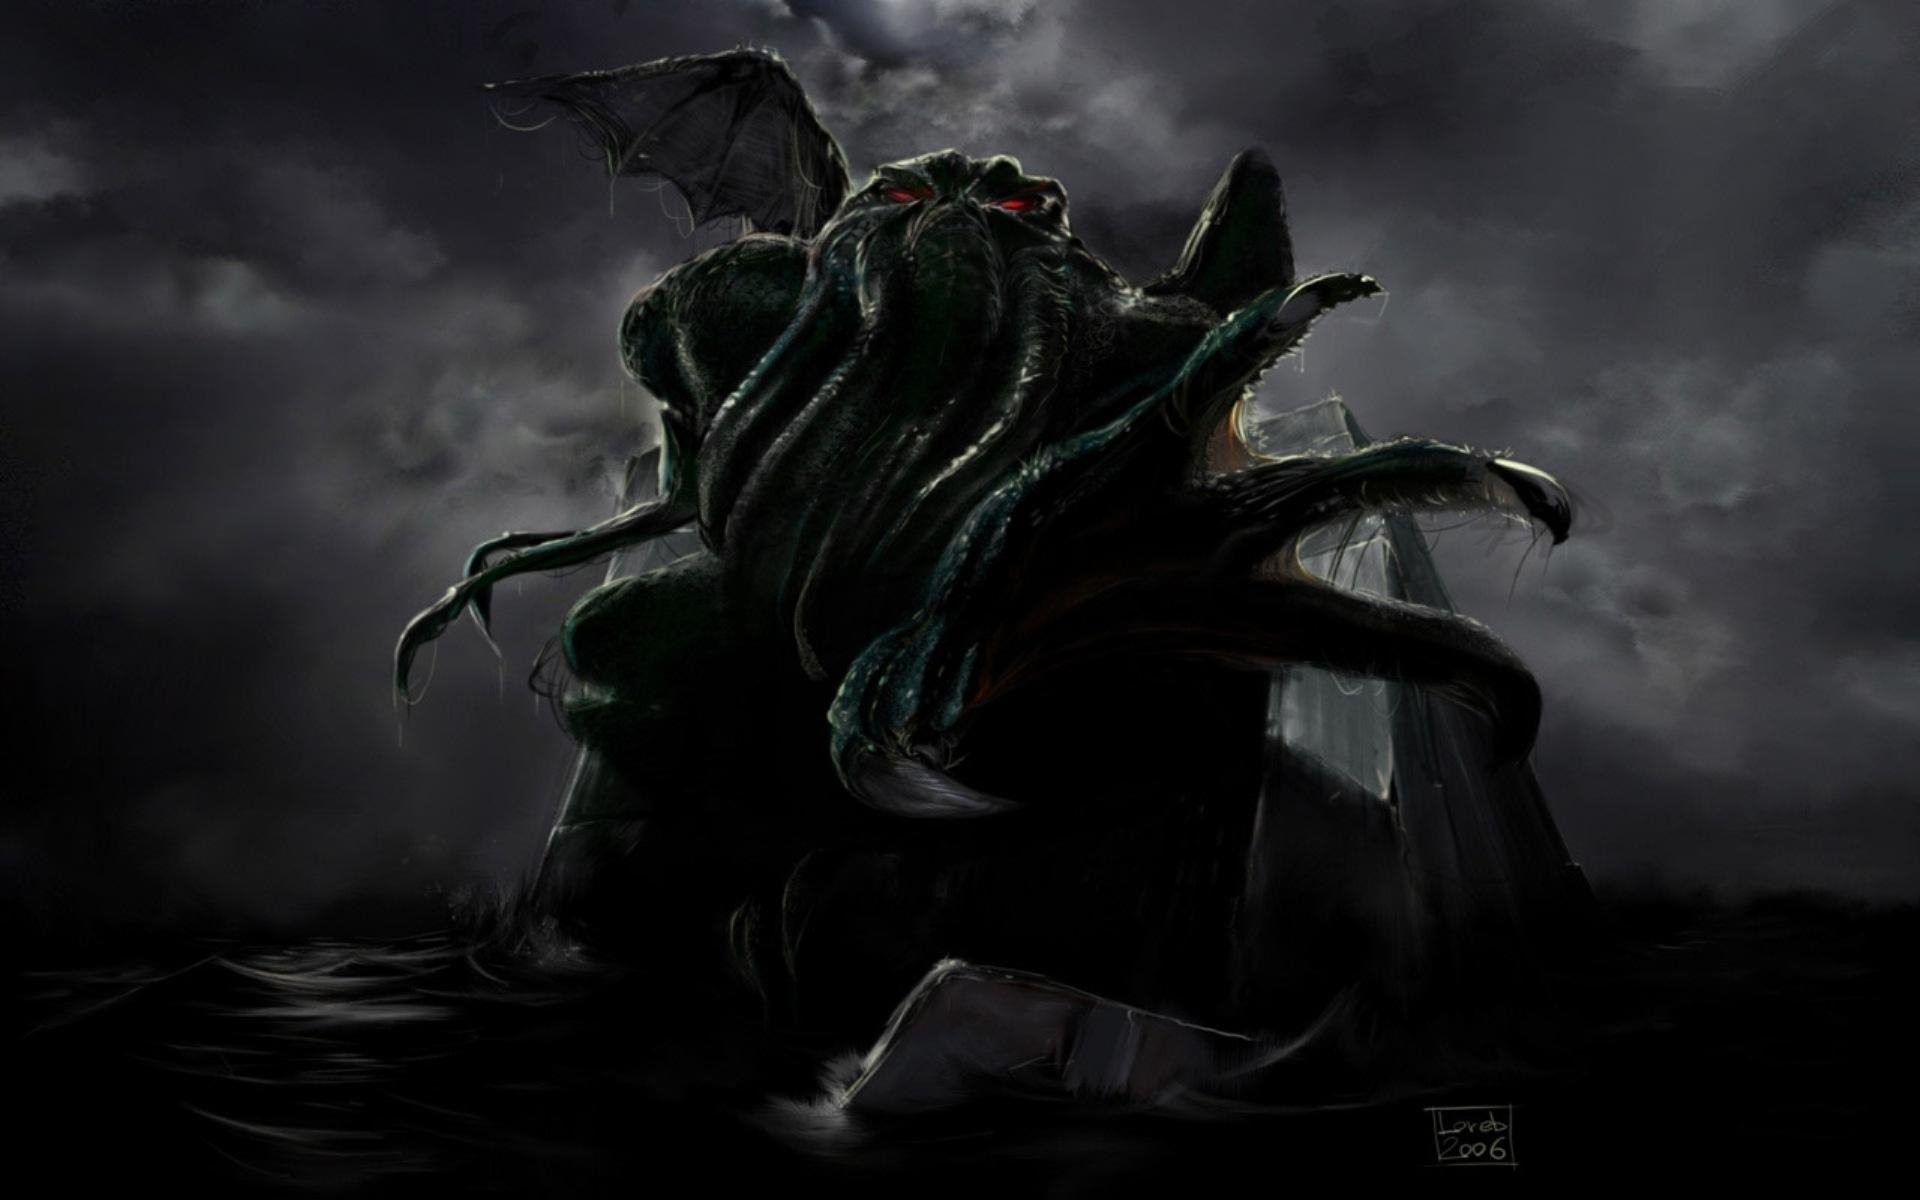 Res: 1920x1200, Cthulhu Wallpapers 25 - 1920 X 1200